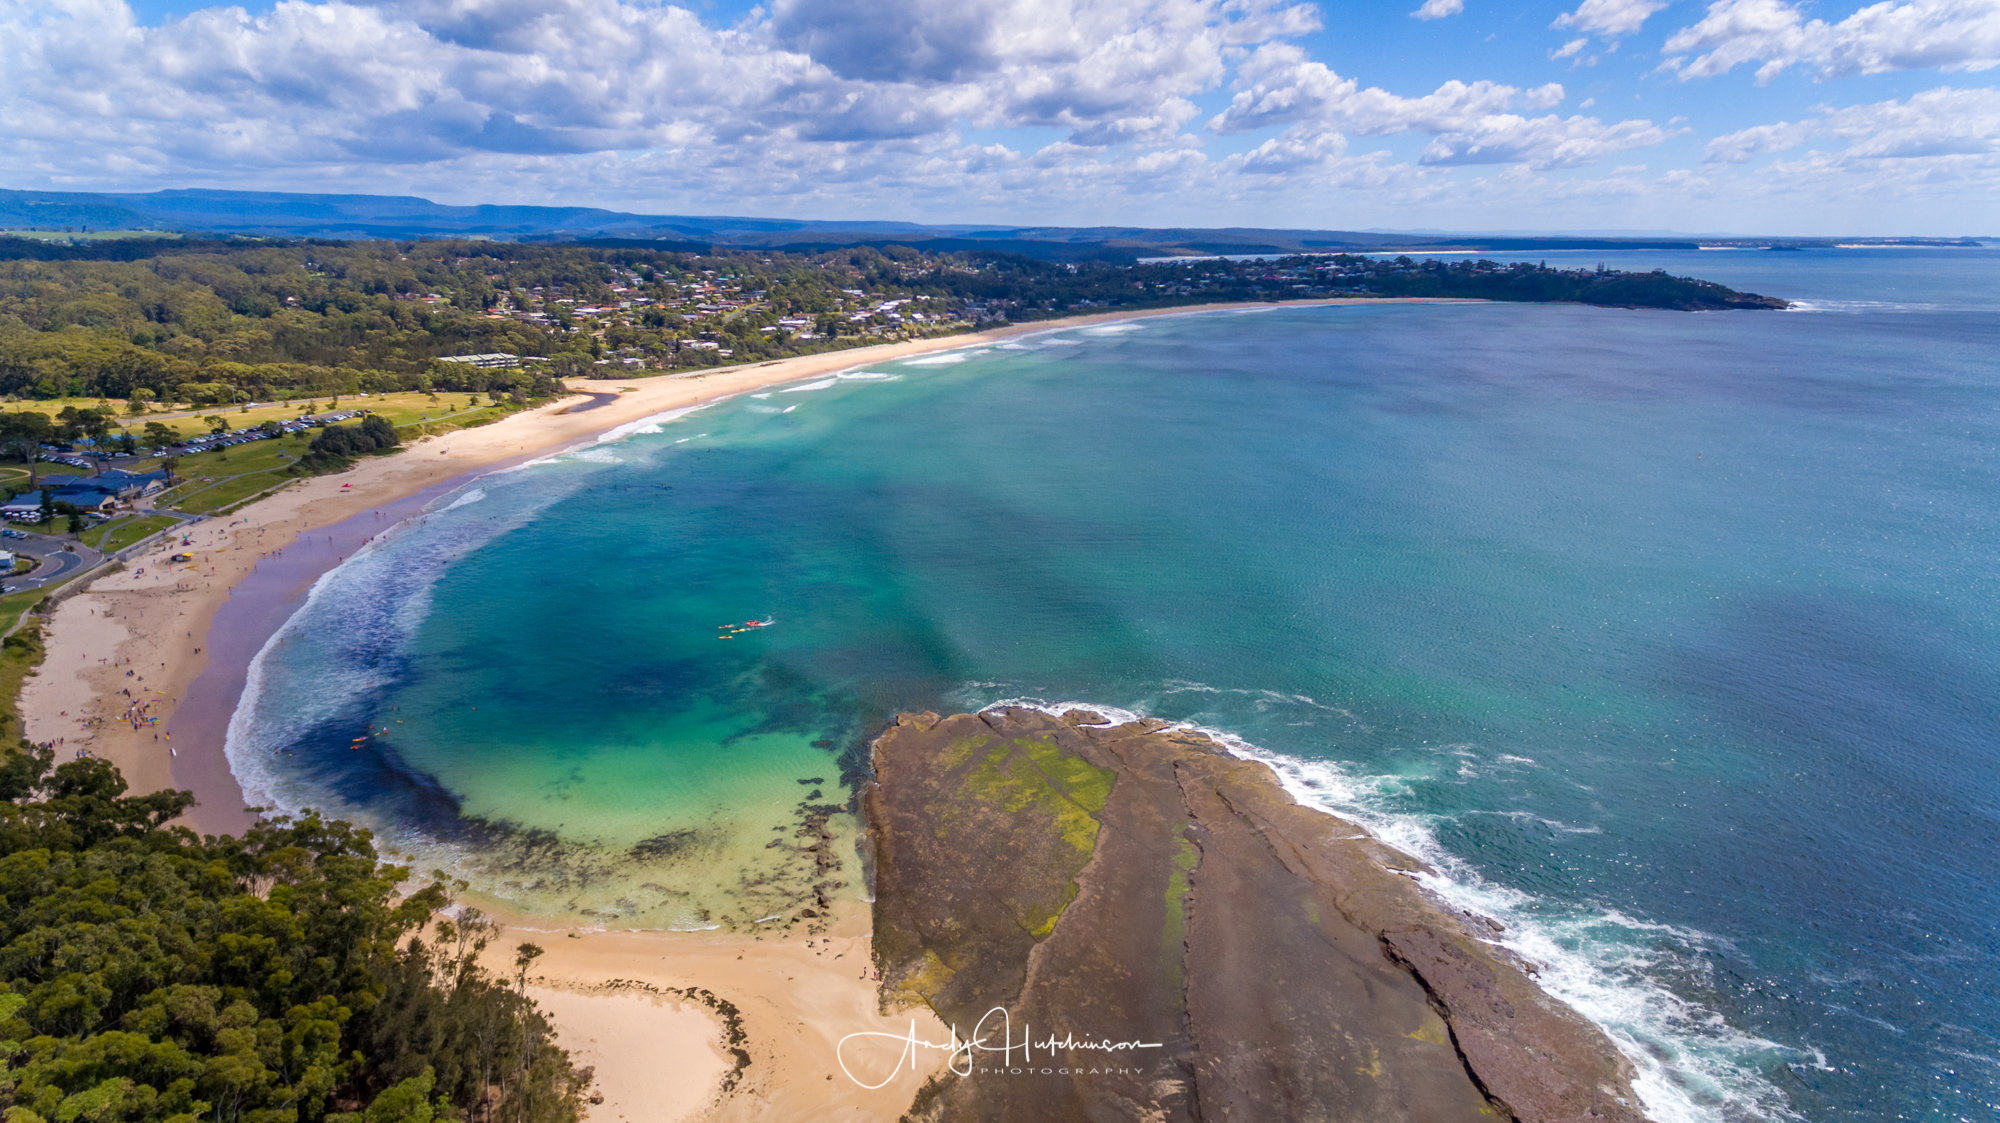 Mollymook's a sensational town beach. If you don't want to be too far away from amenities and you love surfing then it doesn't get much better than this.